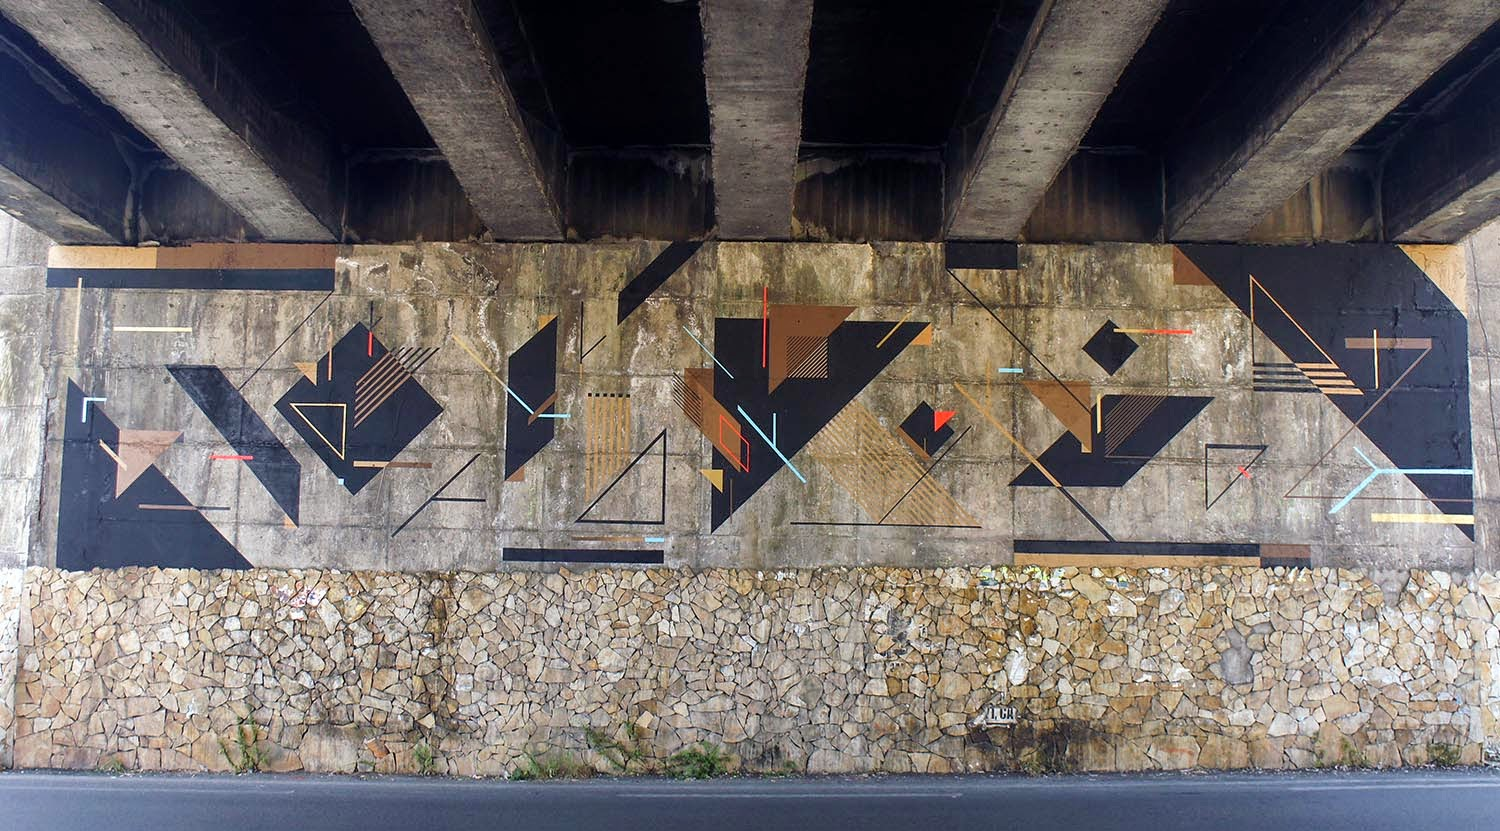 Polish muralist Seikon was also invited to paint for the newest edition of the Emergence Festival in Giardini Naxos, Sicily.